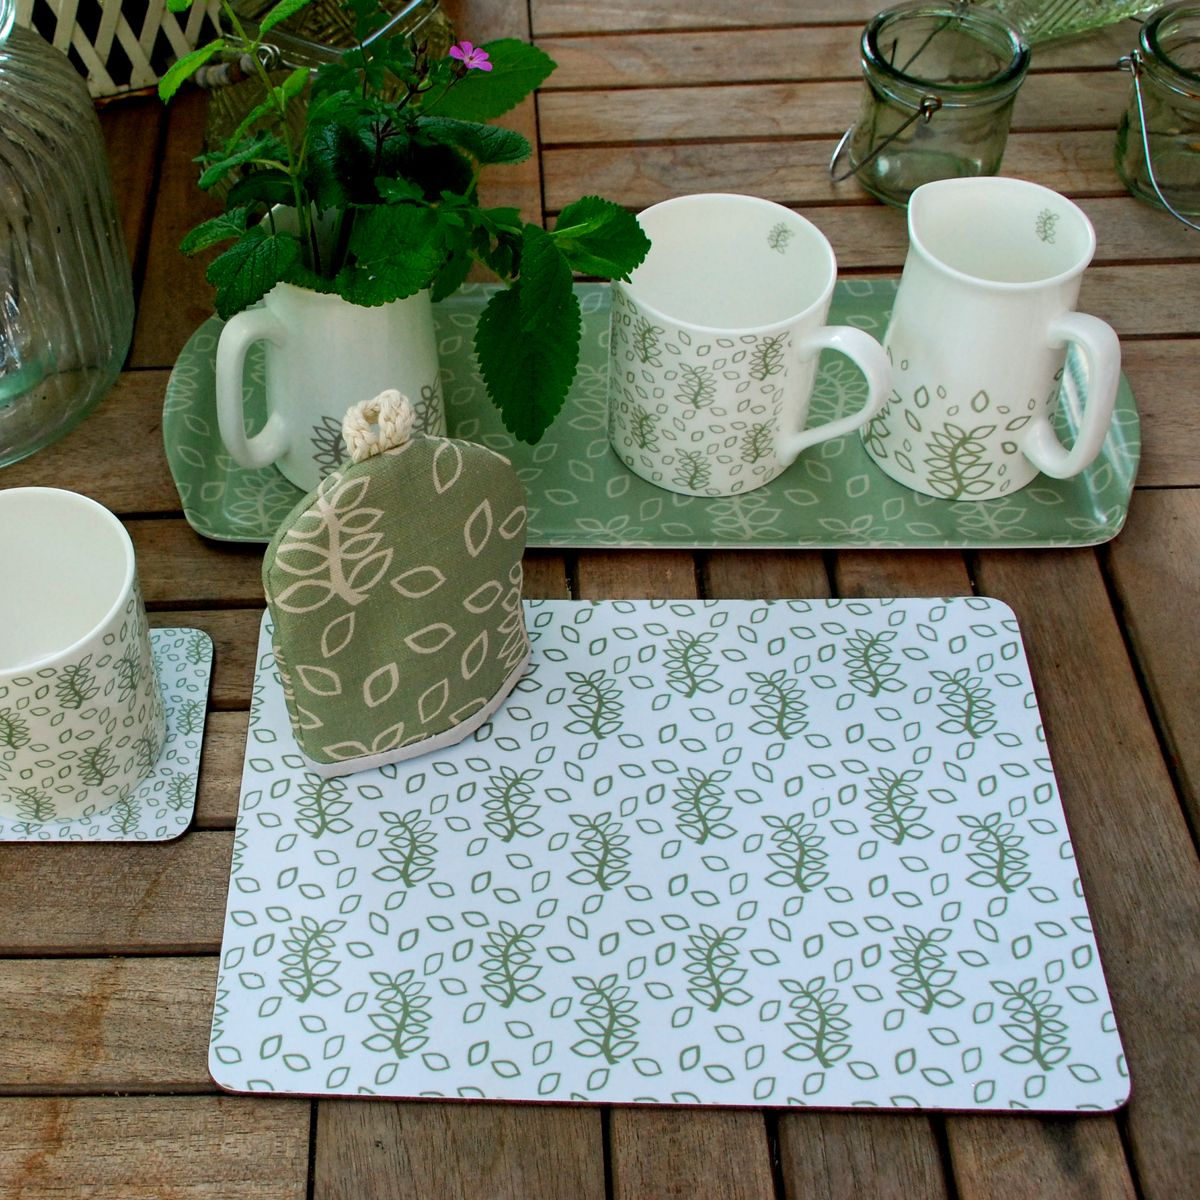 green-leaves-kitchen-placemat.jpg